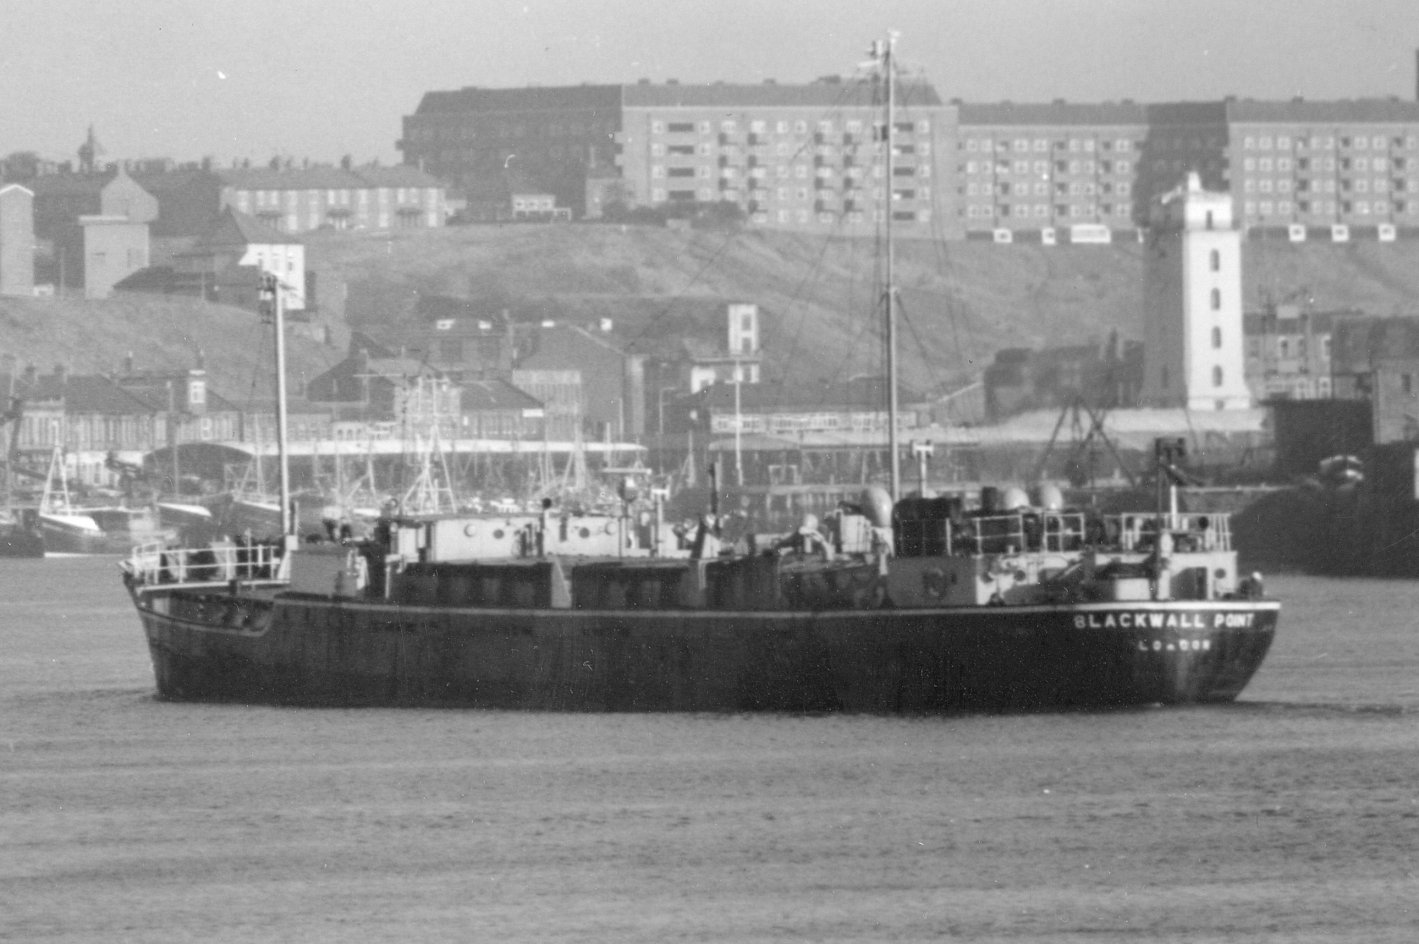 W - BLACKWALL POINT   1975.jpg